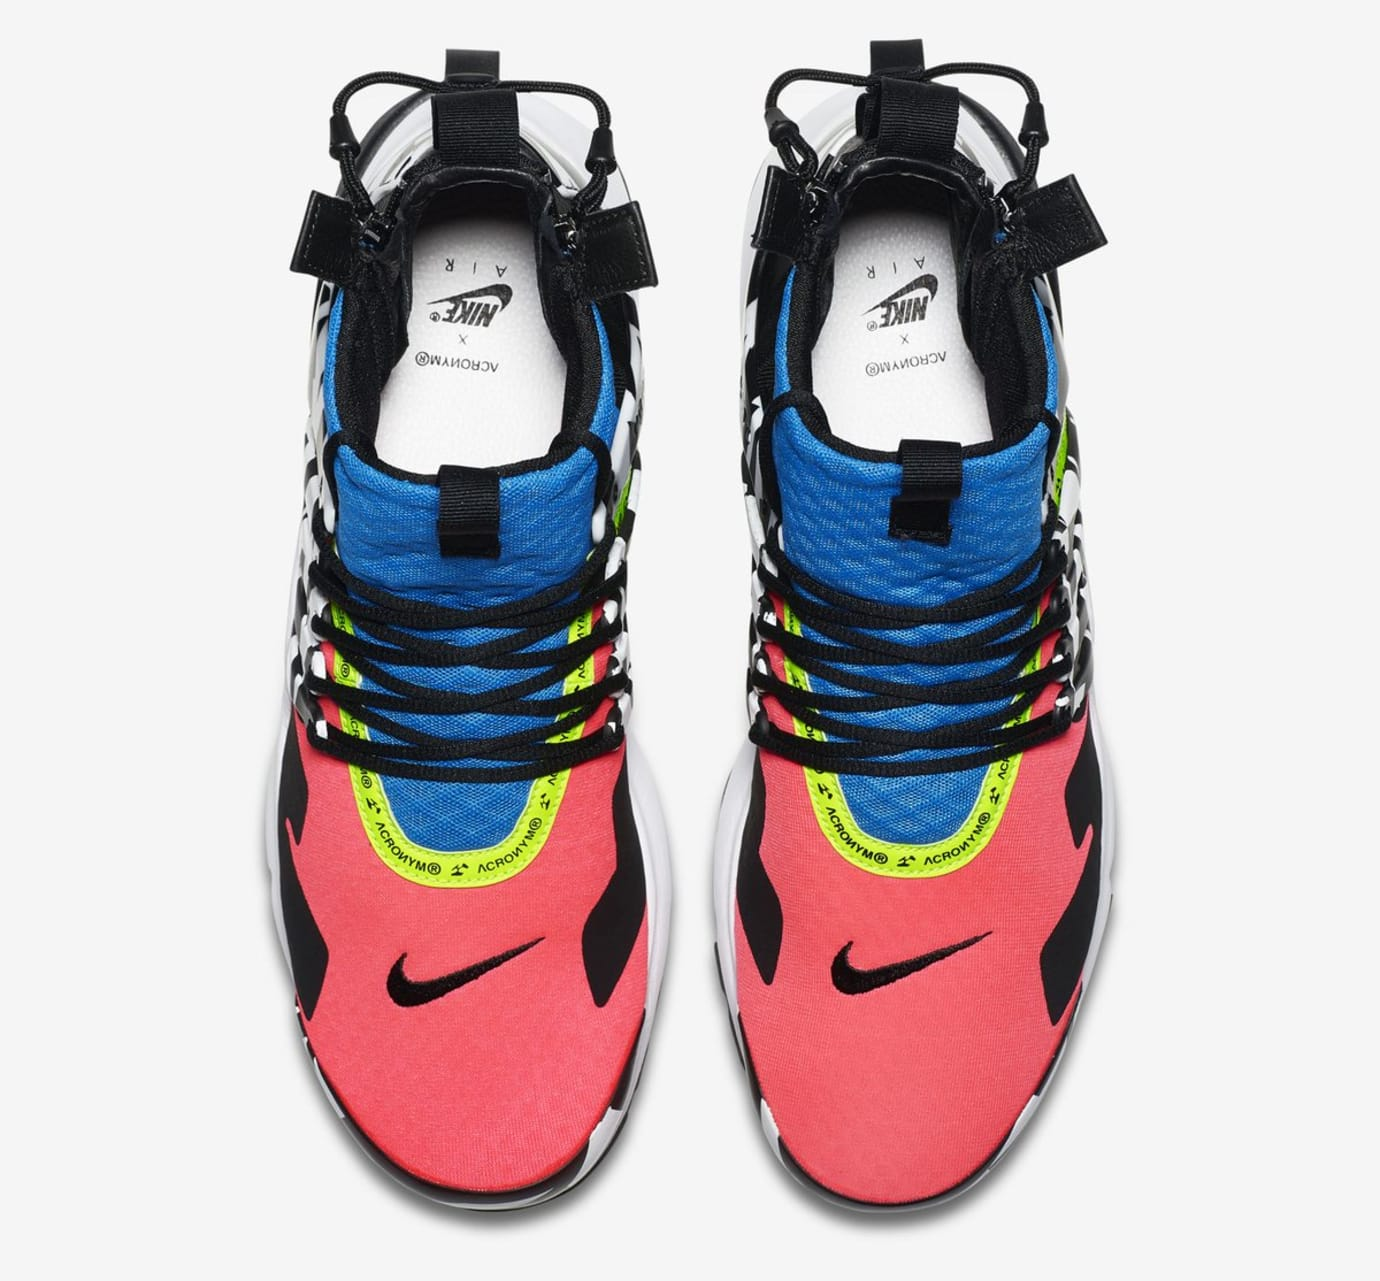 check out c580d 85df5 Acronym x Nike Presto Mid 2018 Collaboration | Sole Collector